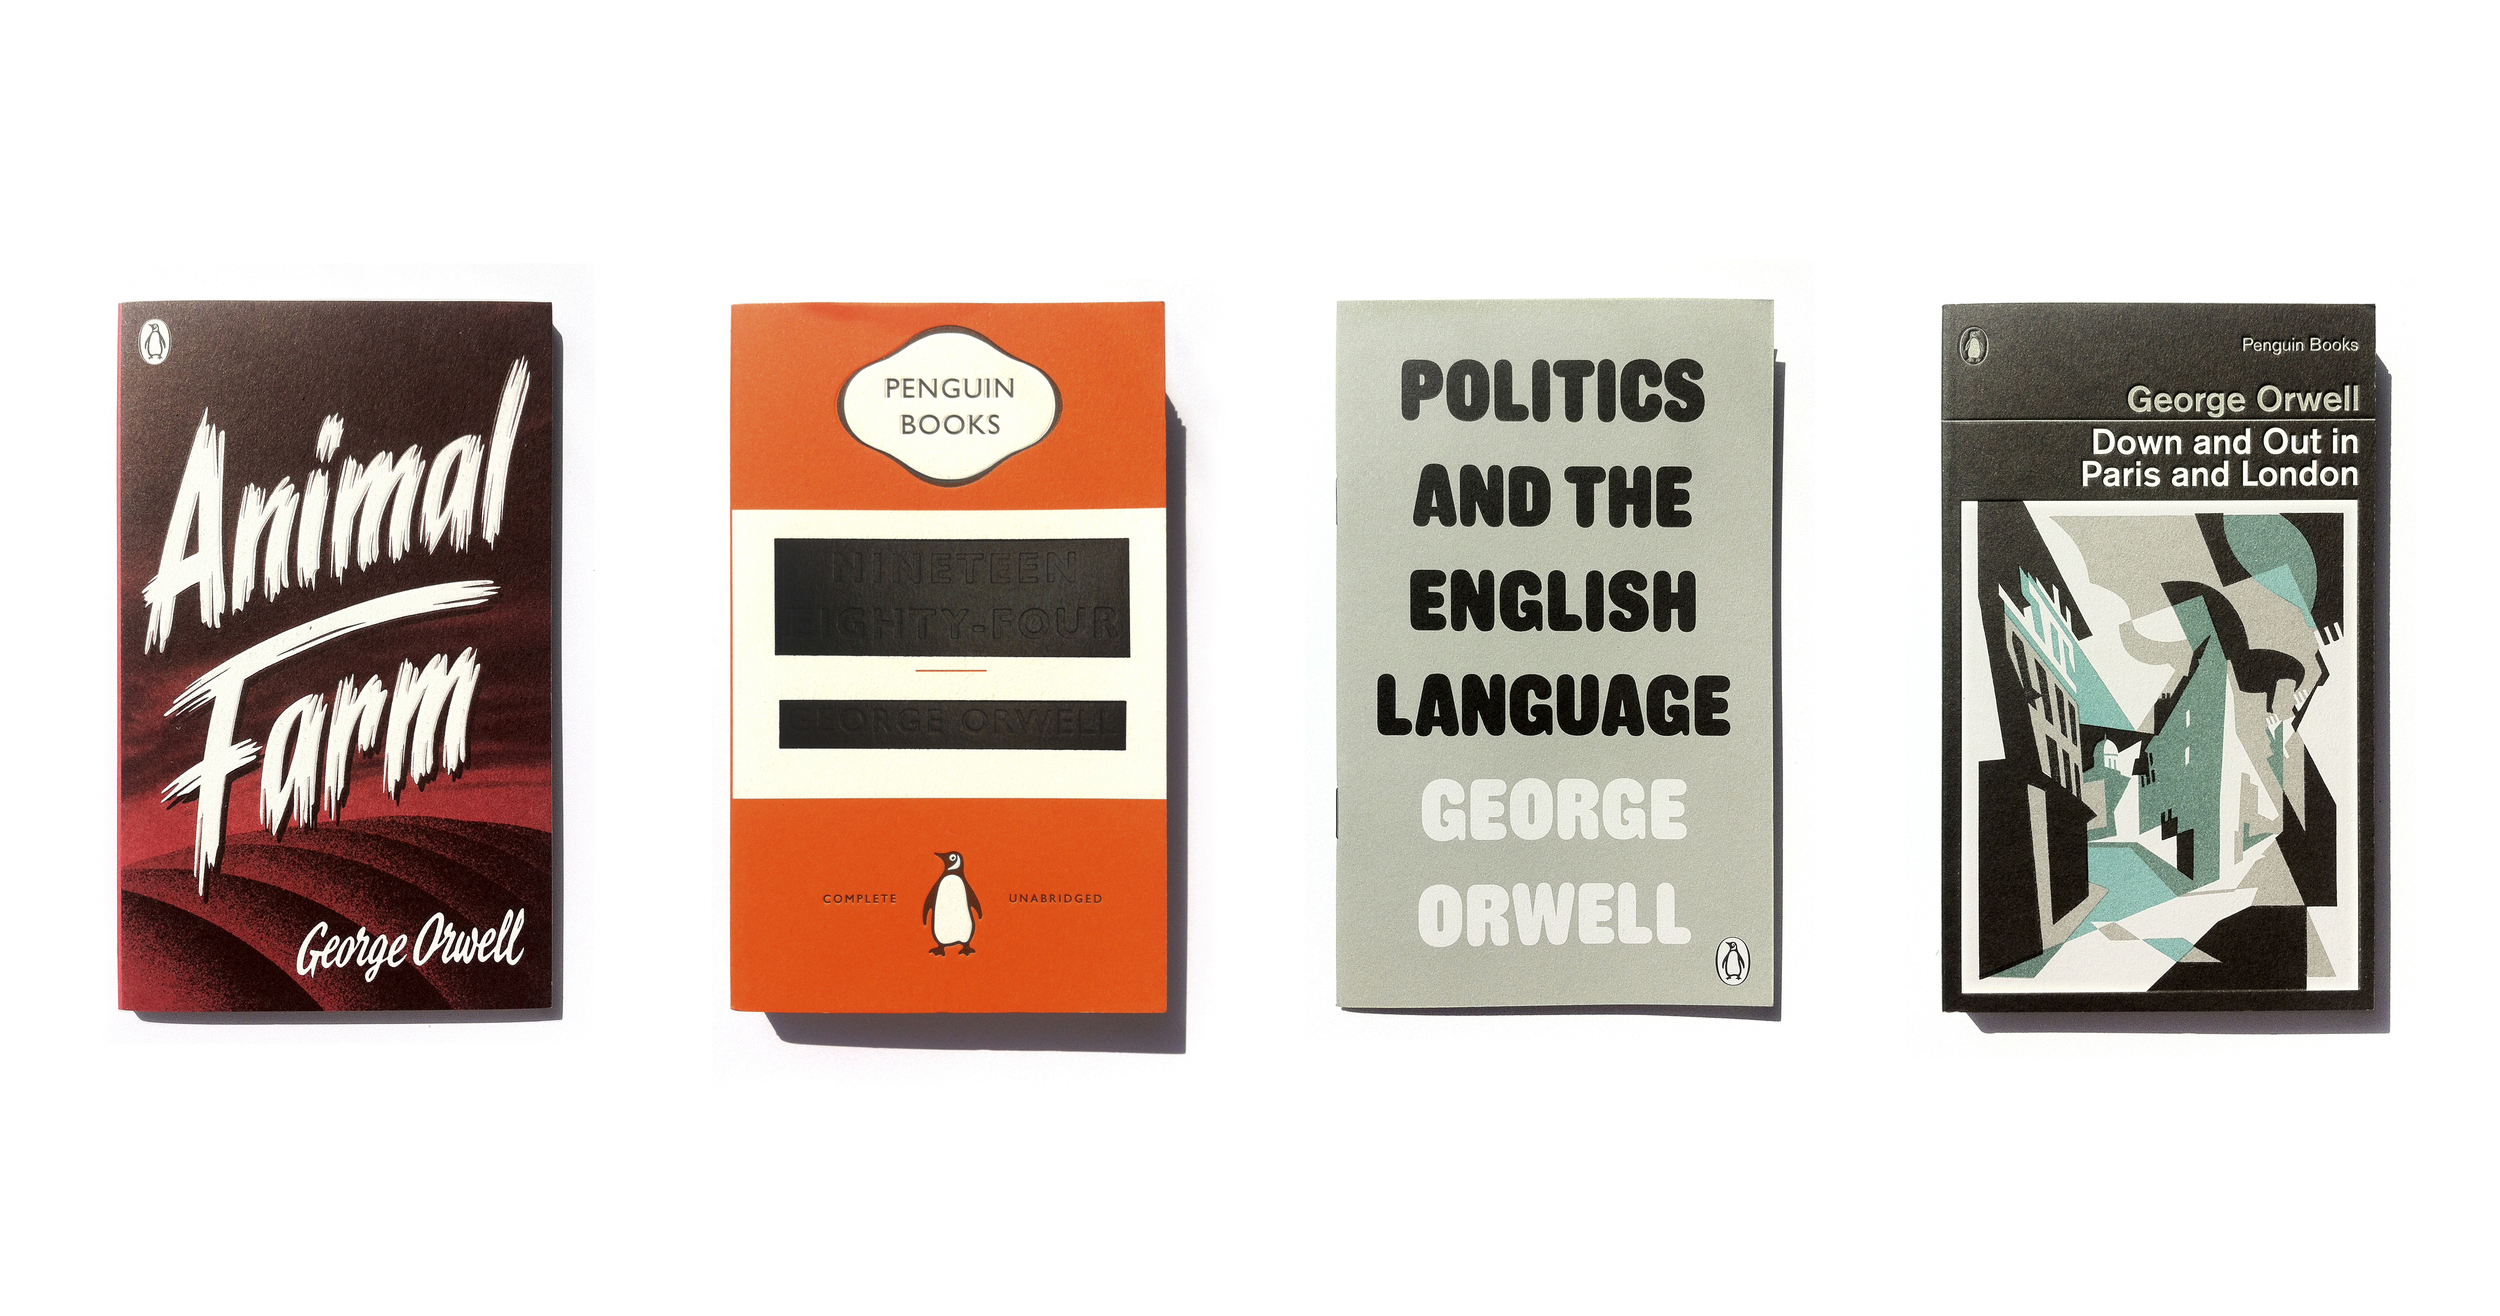 Penguin Great Orwell series - Art Direction: Jim Stoddart Design: David Pearson